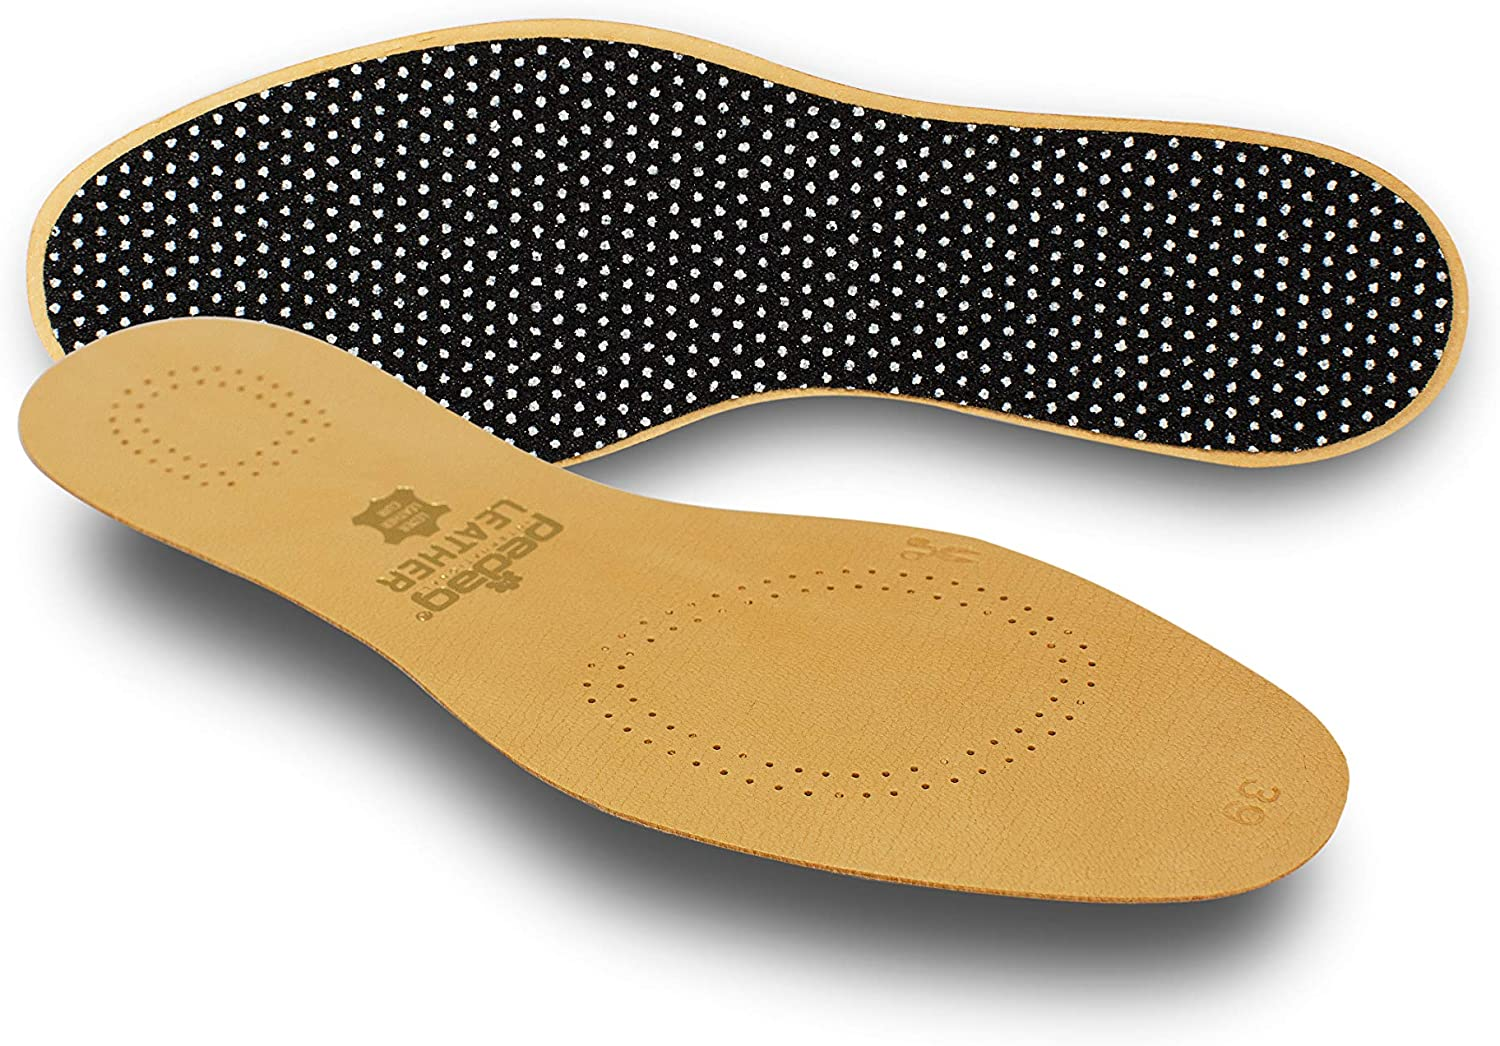 Pedag specialty shop 172 Leather Naturally Tanned Activat Insole Sheepskin Max 61% OFF with